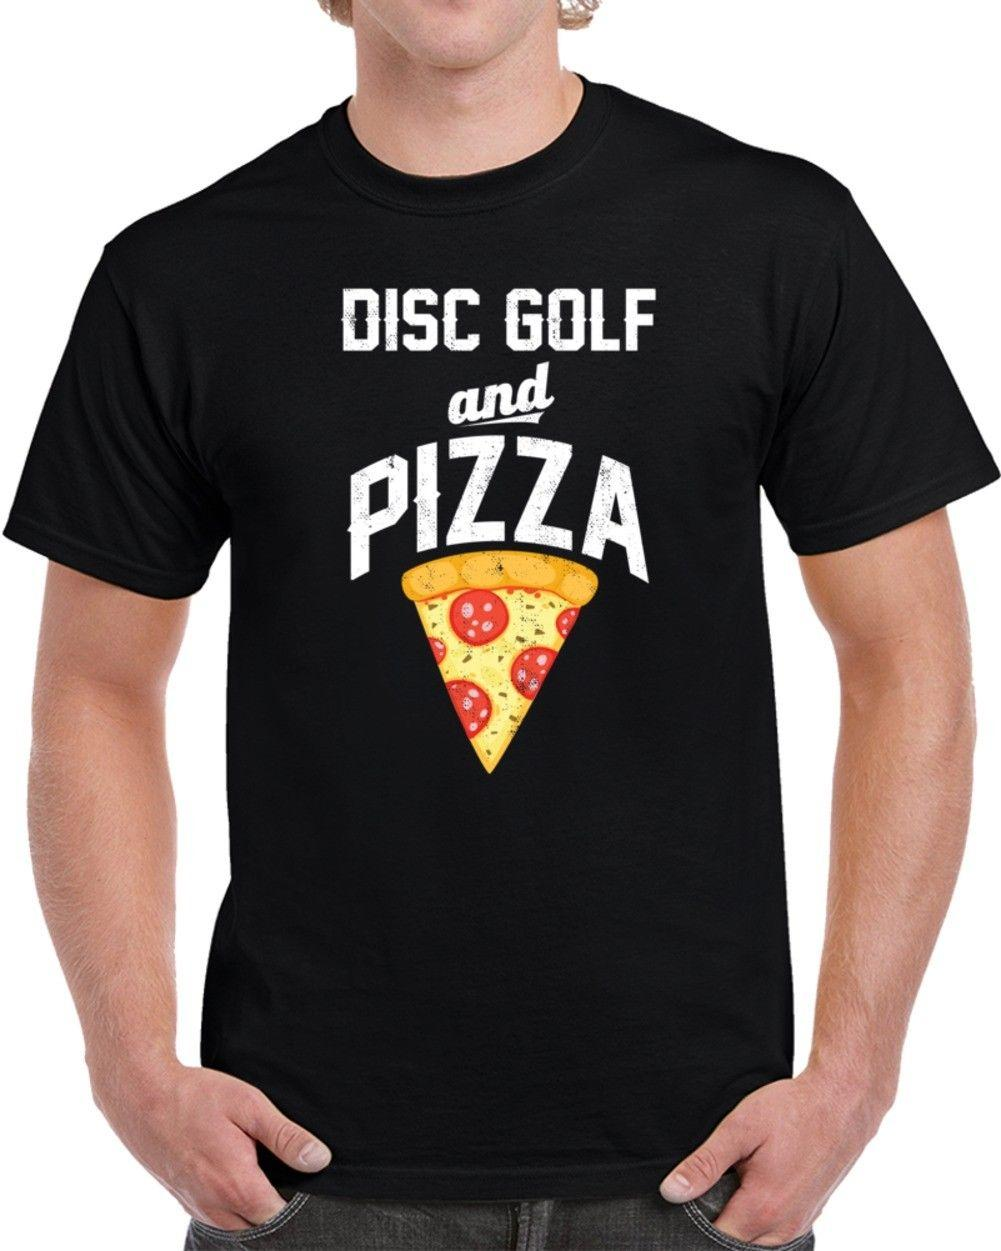 f3fa31ca Disc Golf And Pizza Unisex T Shirt Funny Unisex Casual Top The Who T Shirts  Online Tshirt Shopping From Countrysidelocks, $12.96| DHgate.Com